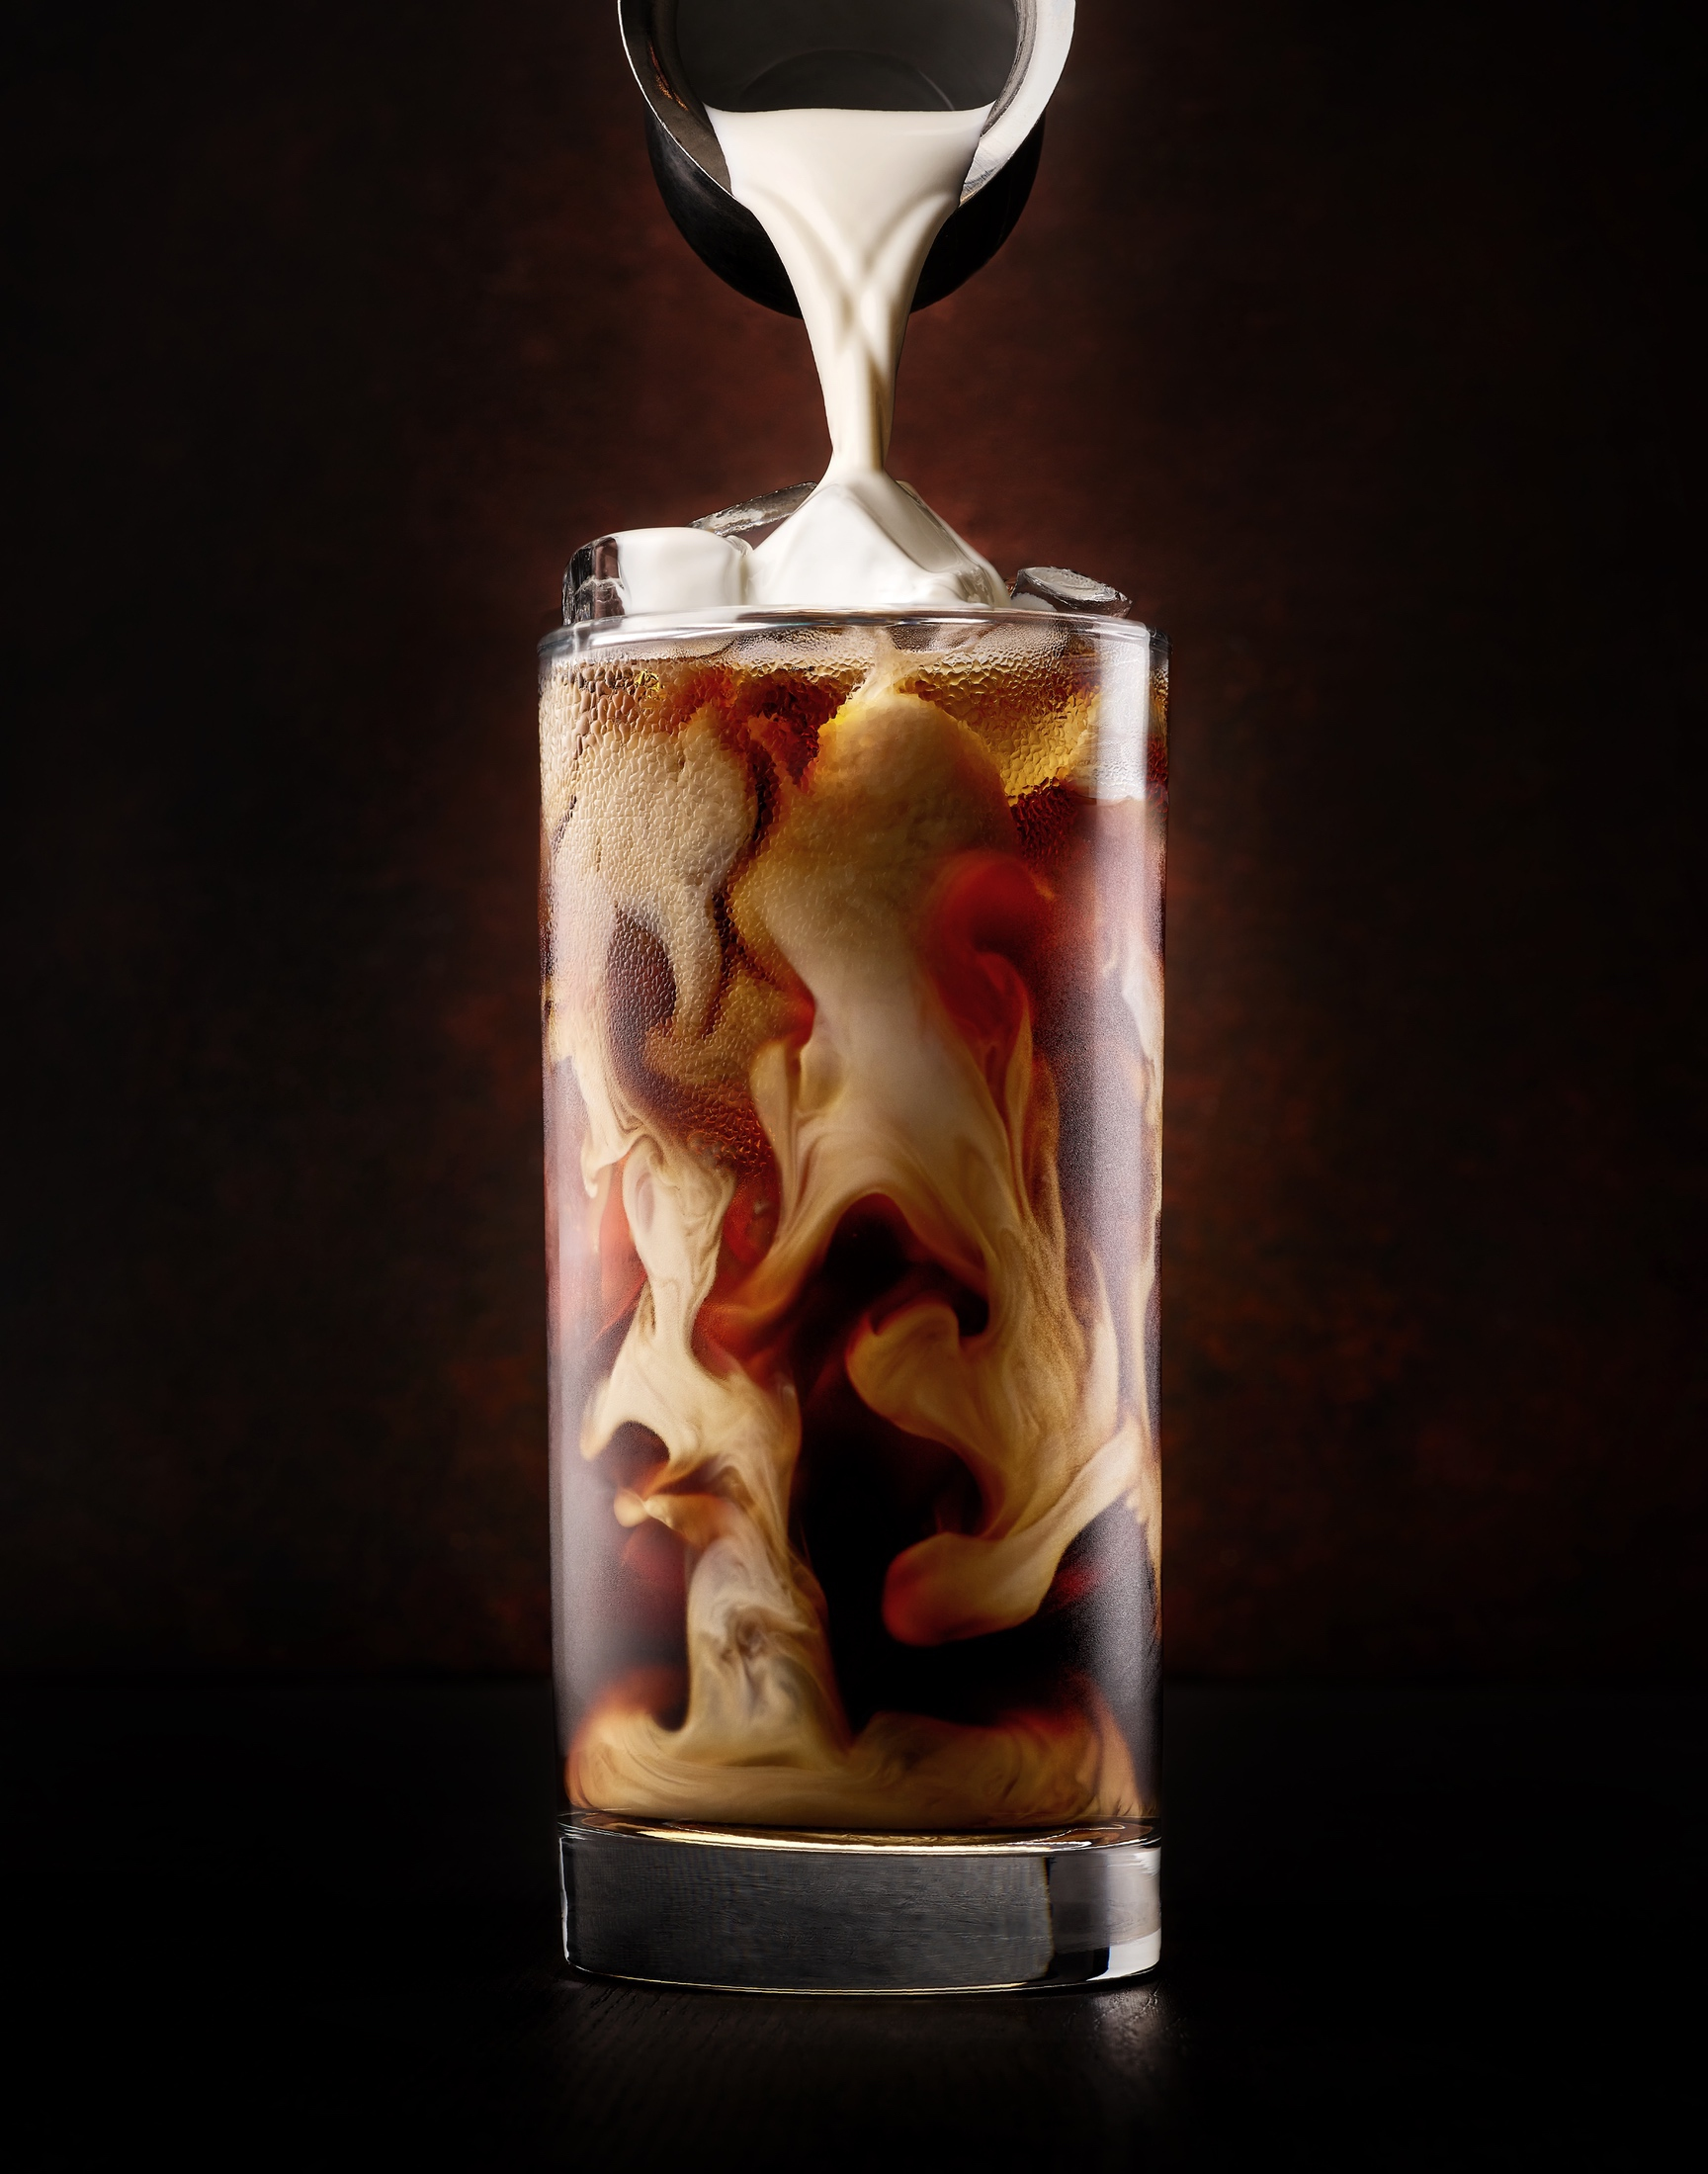 AaronVan_drink_photography_iced_coffee_cream_pour